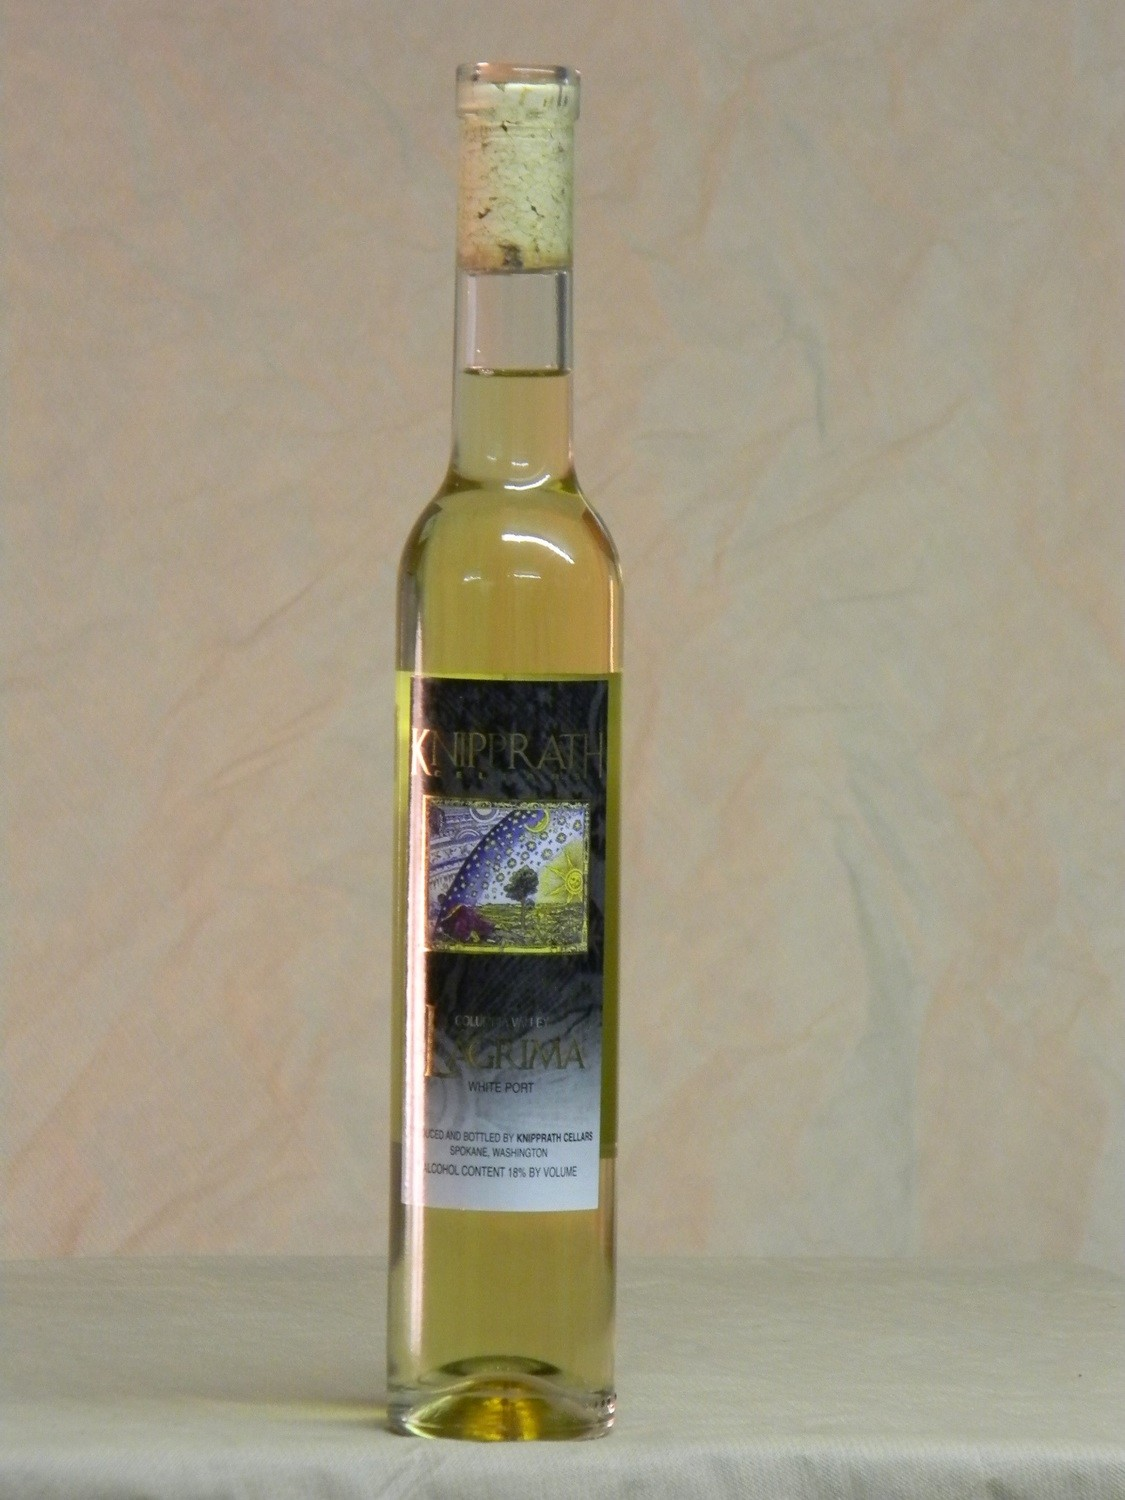 Lagrima White Port 375 mL